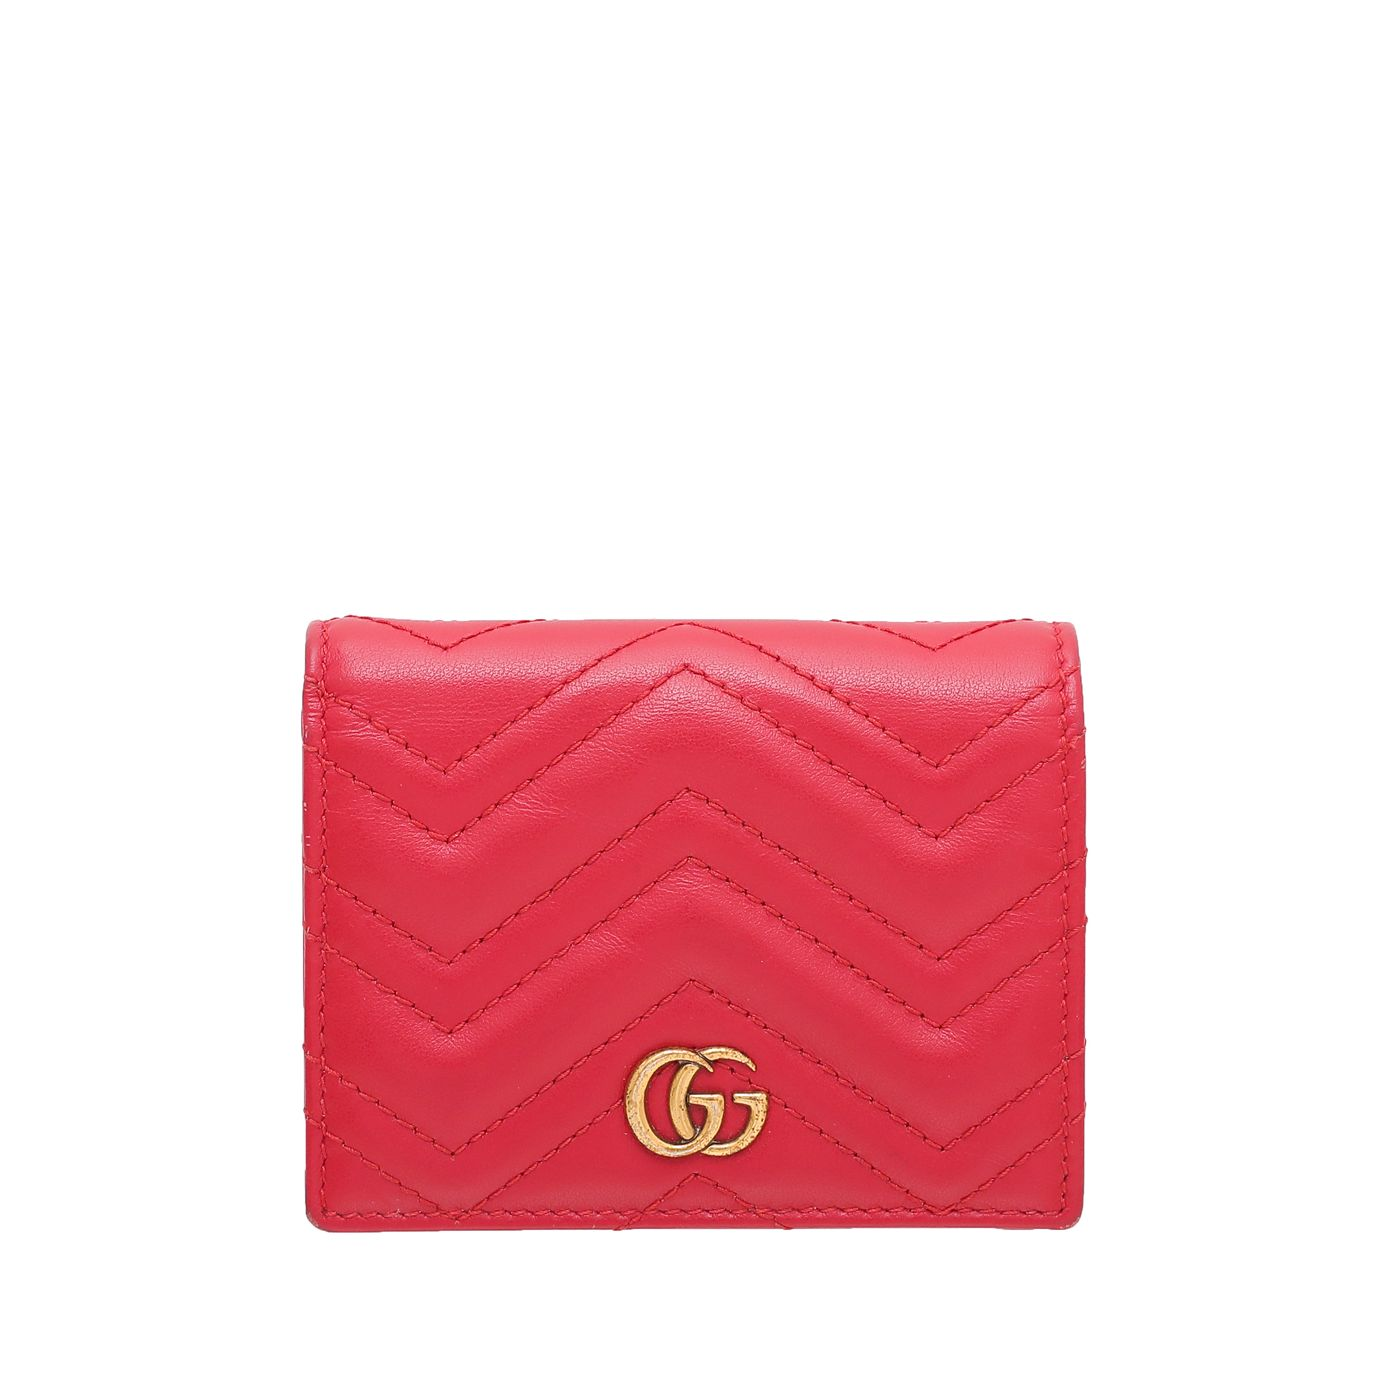 Gucci Red GG Marmont Card Case